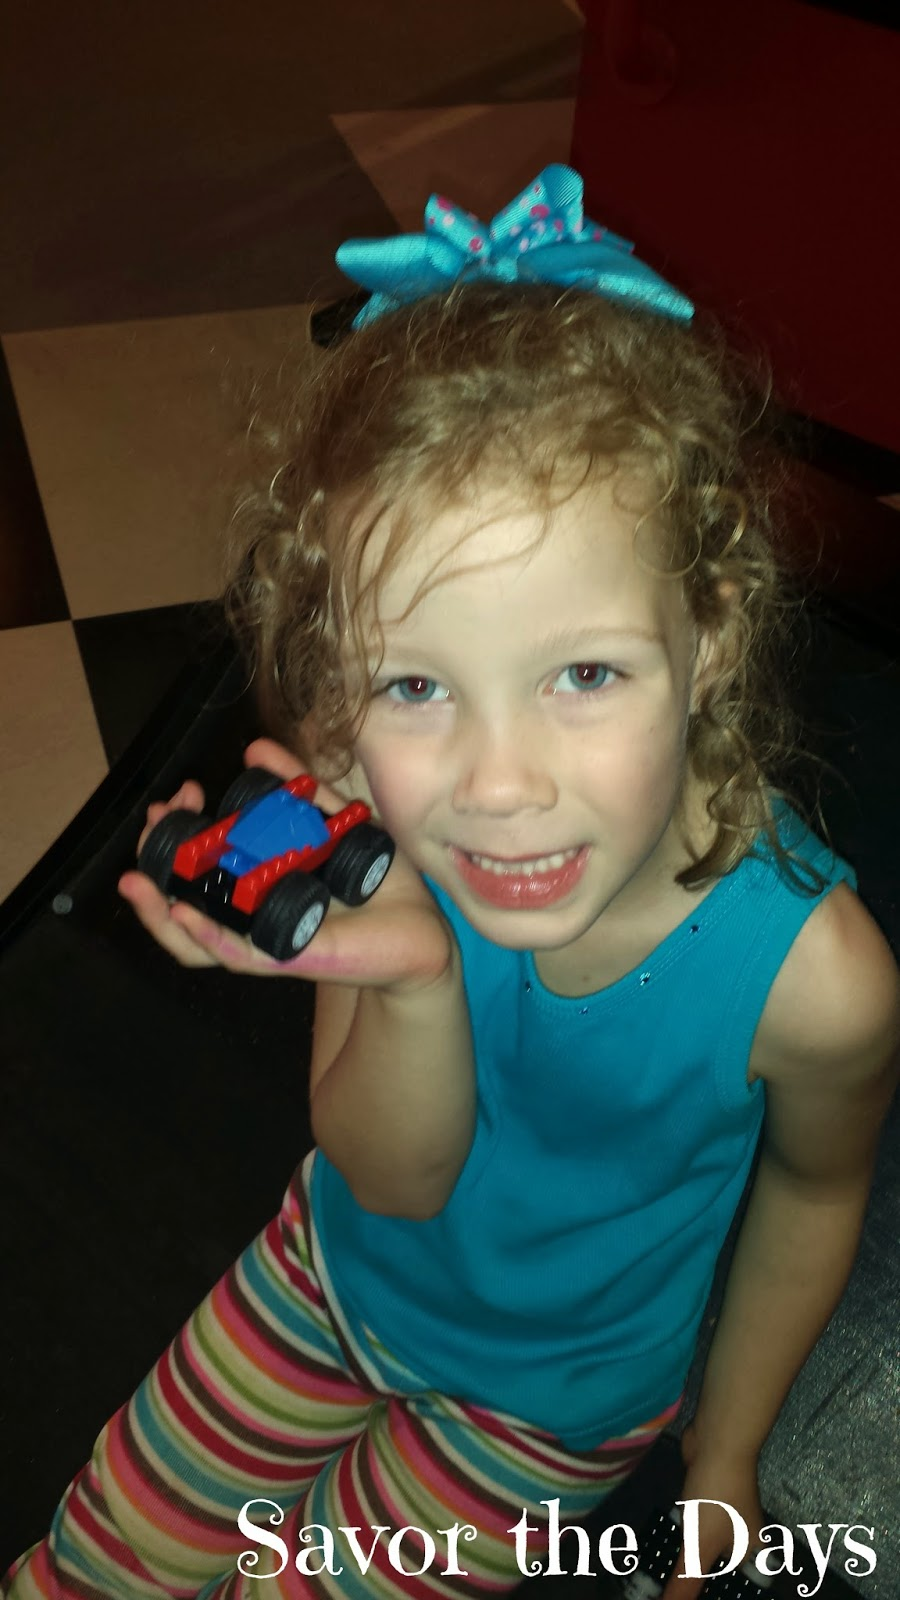 Girl with Lego car at Legoland Discovery Center in Grapevine